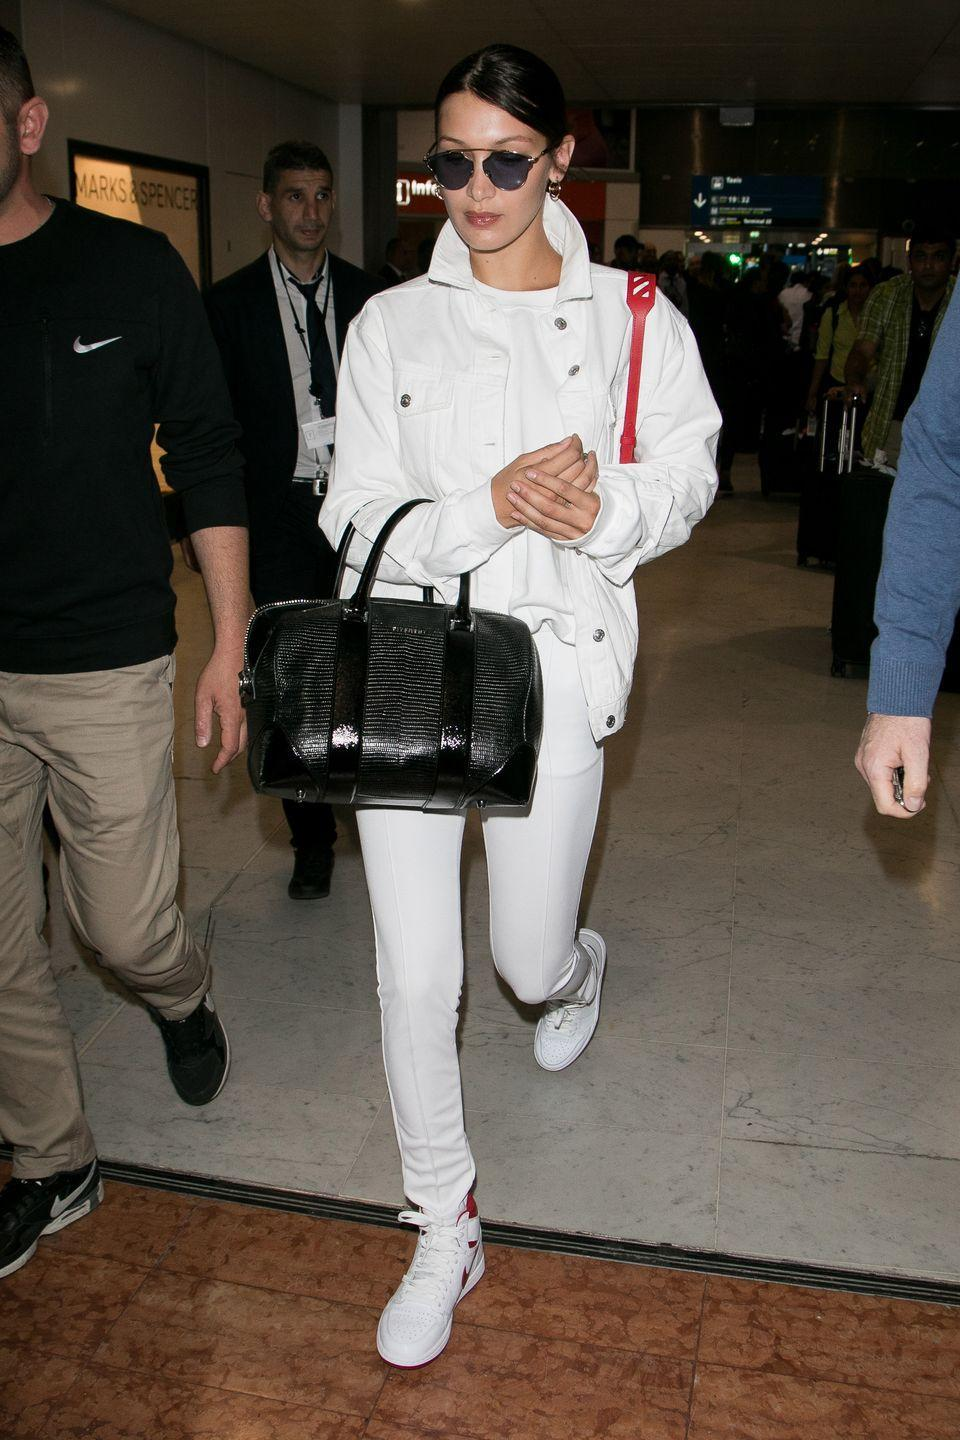 <p>In a white jacket, top and jeans, Nike sneakers, black leather satchel and Dior sunglasses at the Paris airport.</p>